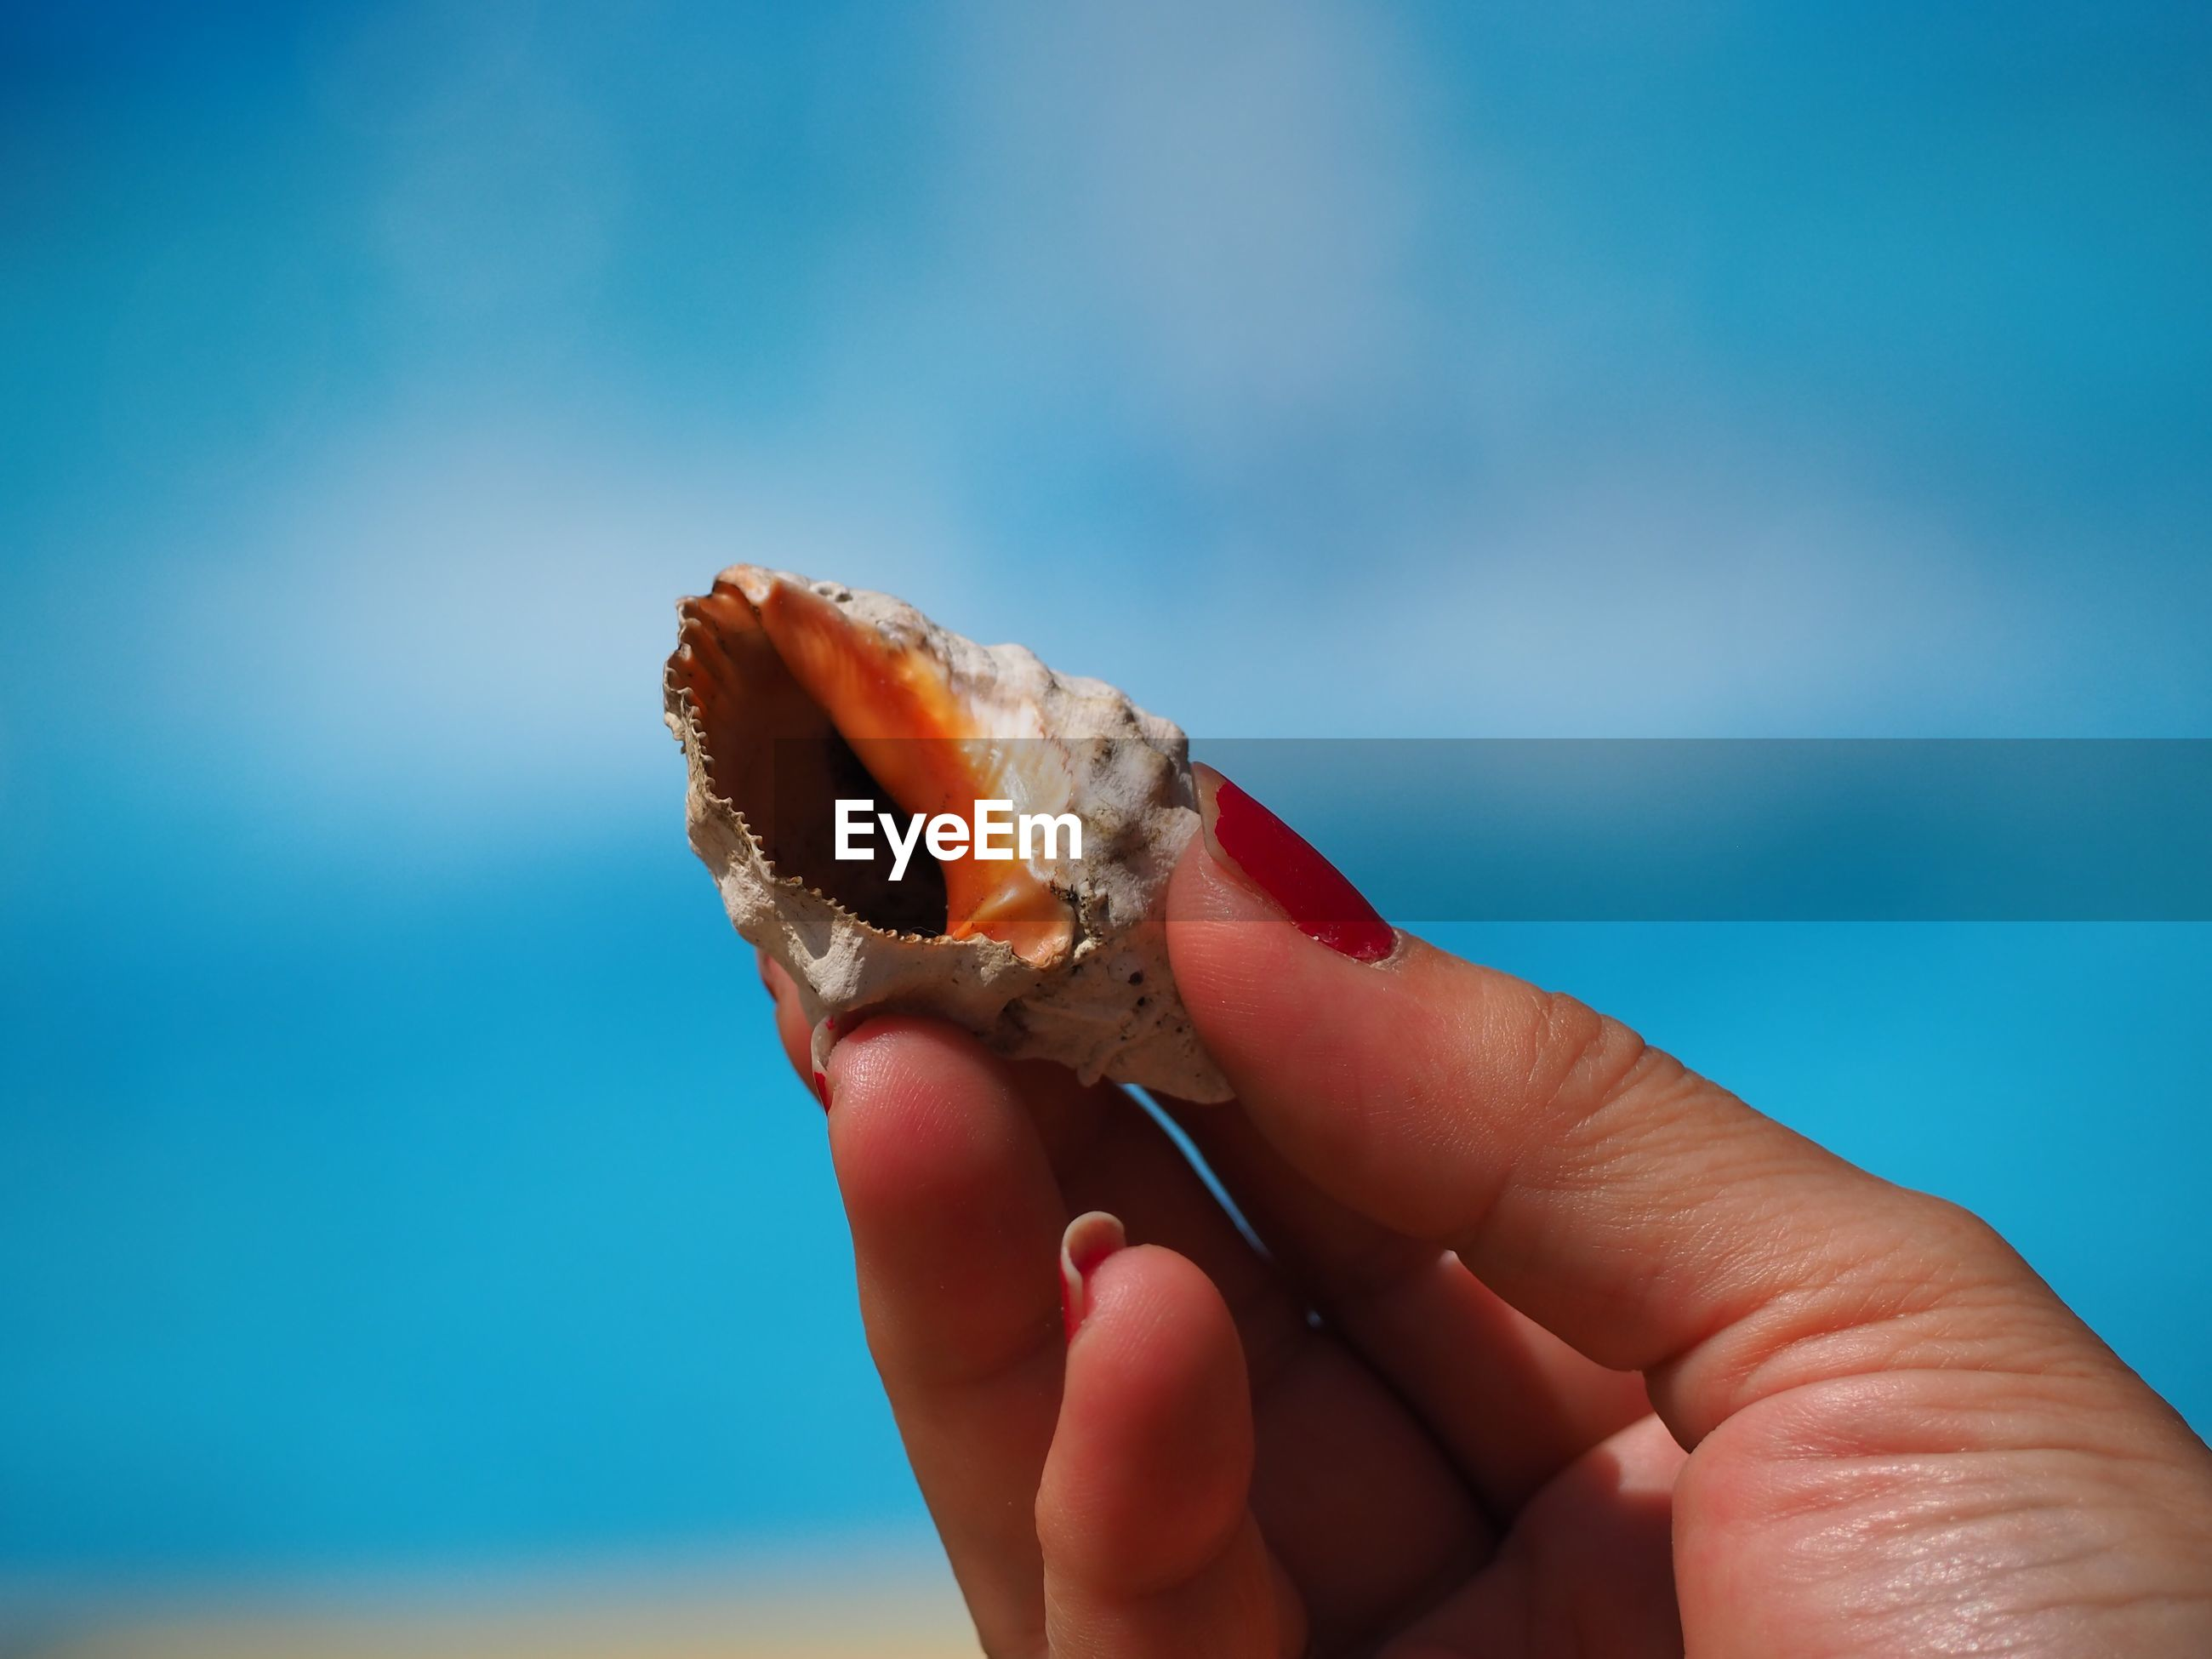 Cropped image of hand holding seashell